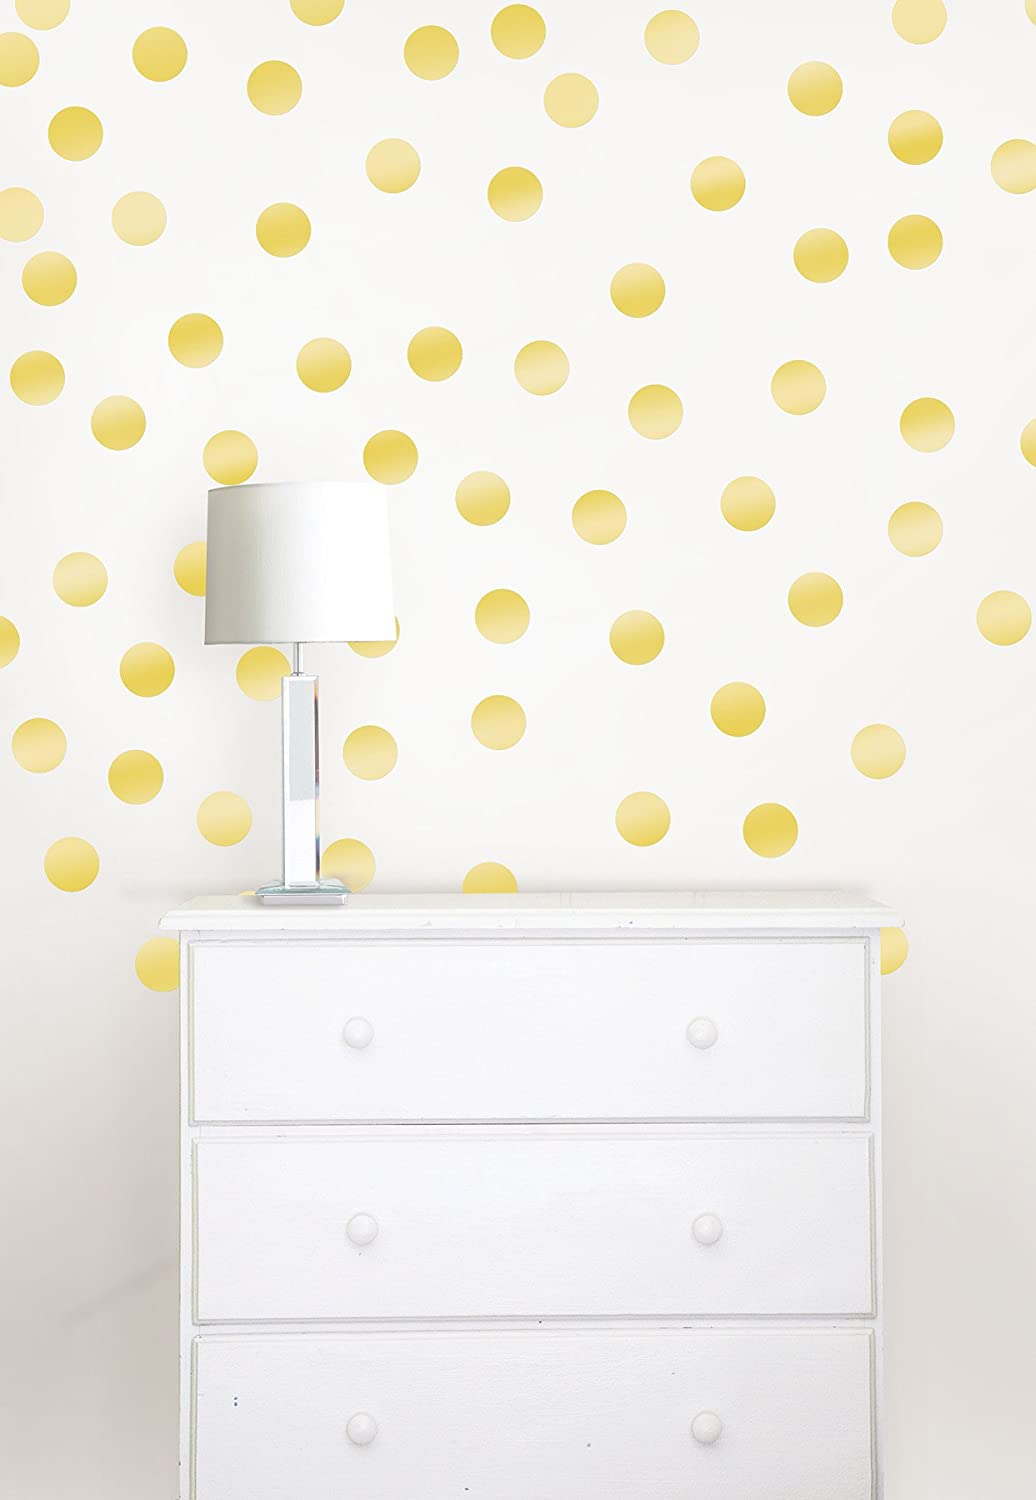 Wall Pops WPD1806 Confetti Dots Wall Decal, Gold